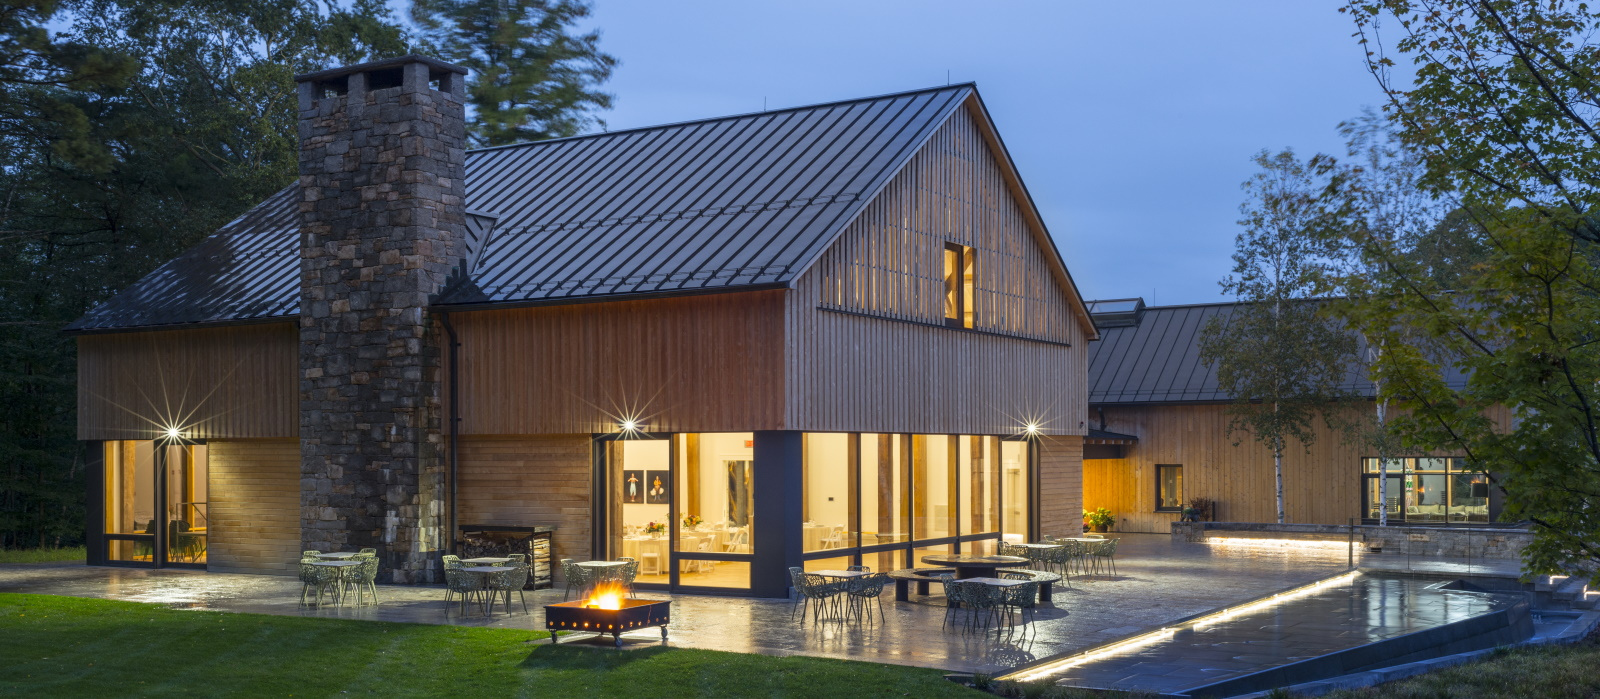 Alnoba wins AIA New Hampshire Award